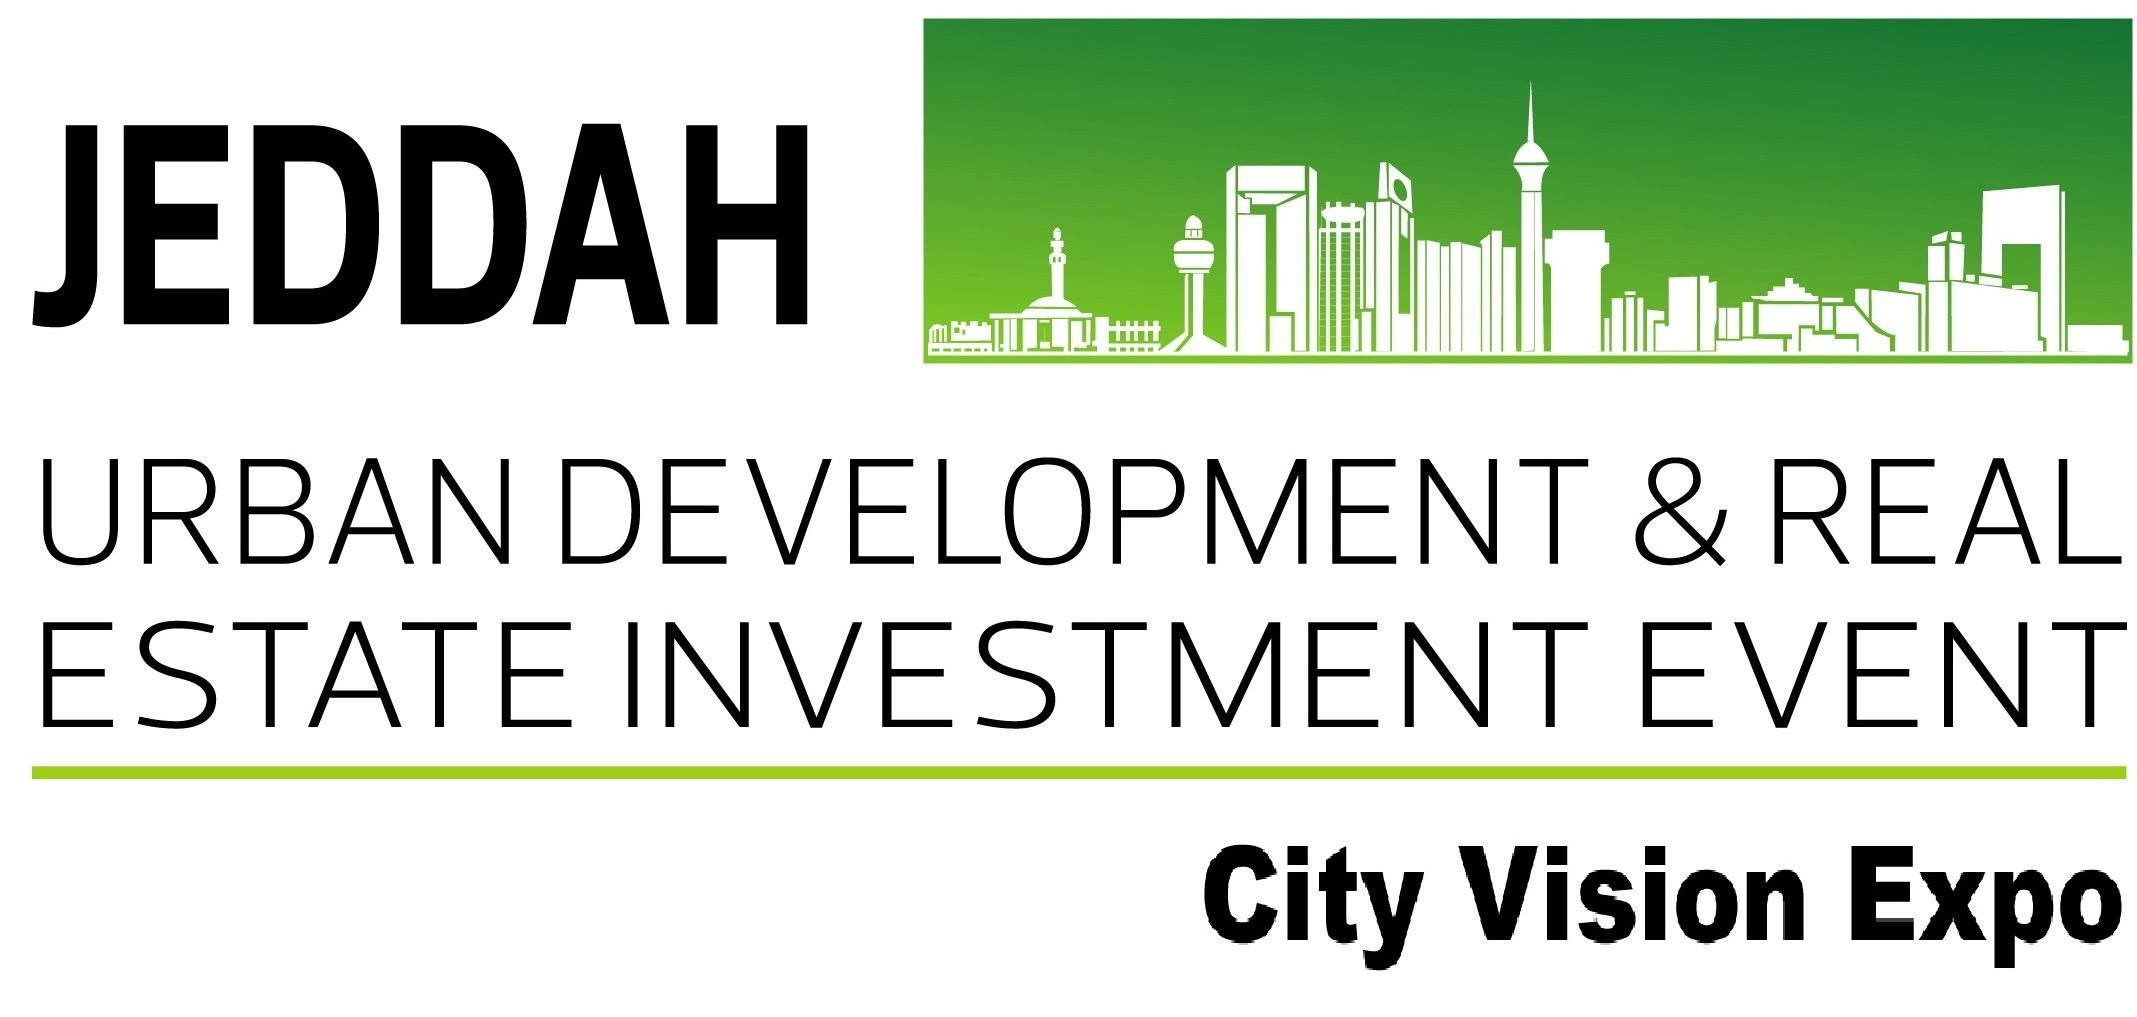 Jeddah Urban Development and Real Estate Investment Event (City Vision Expo 2017)